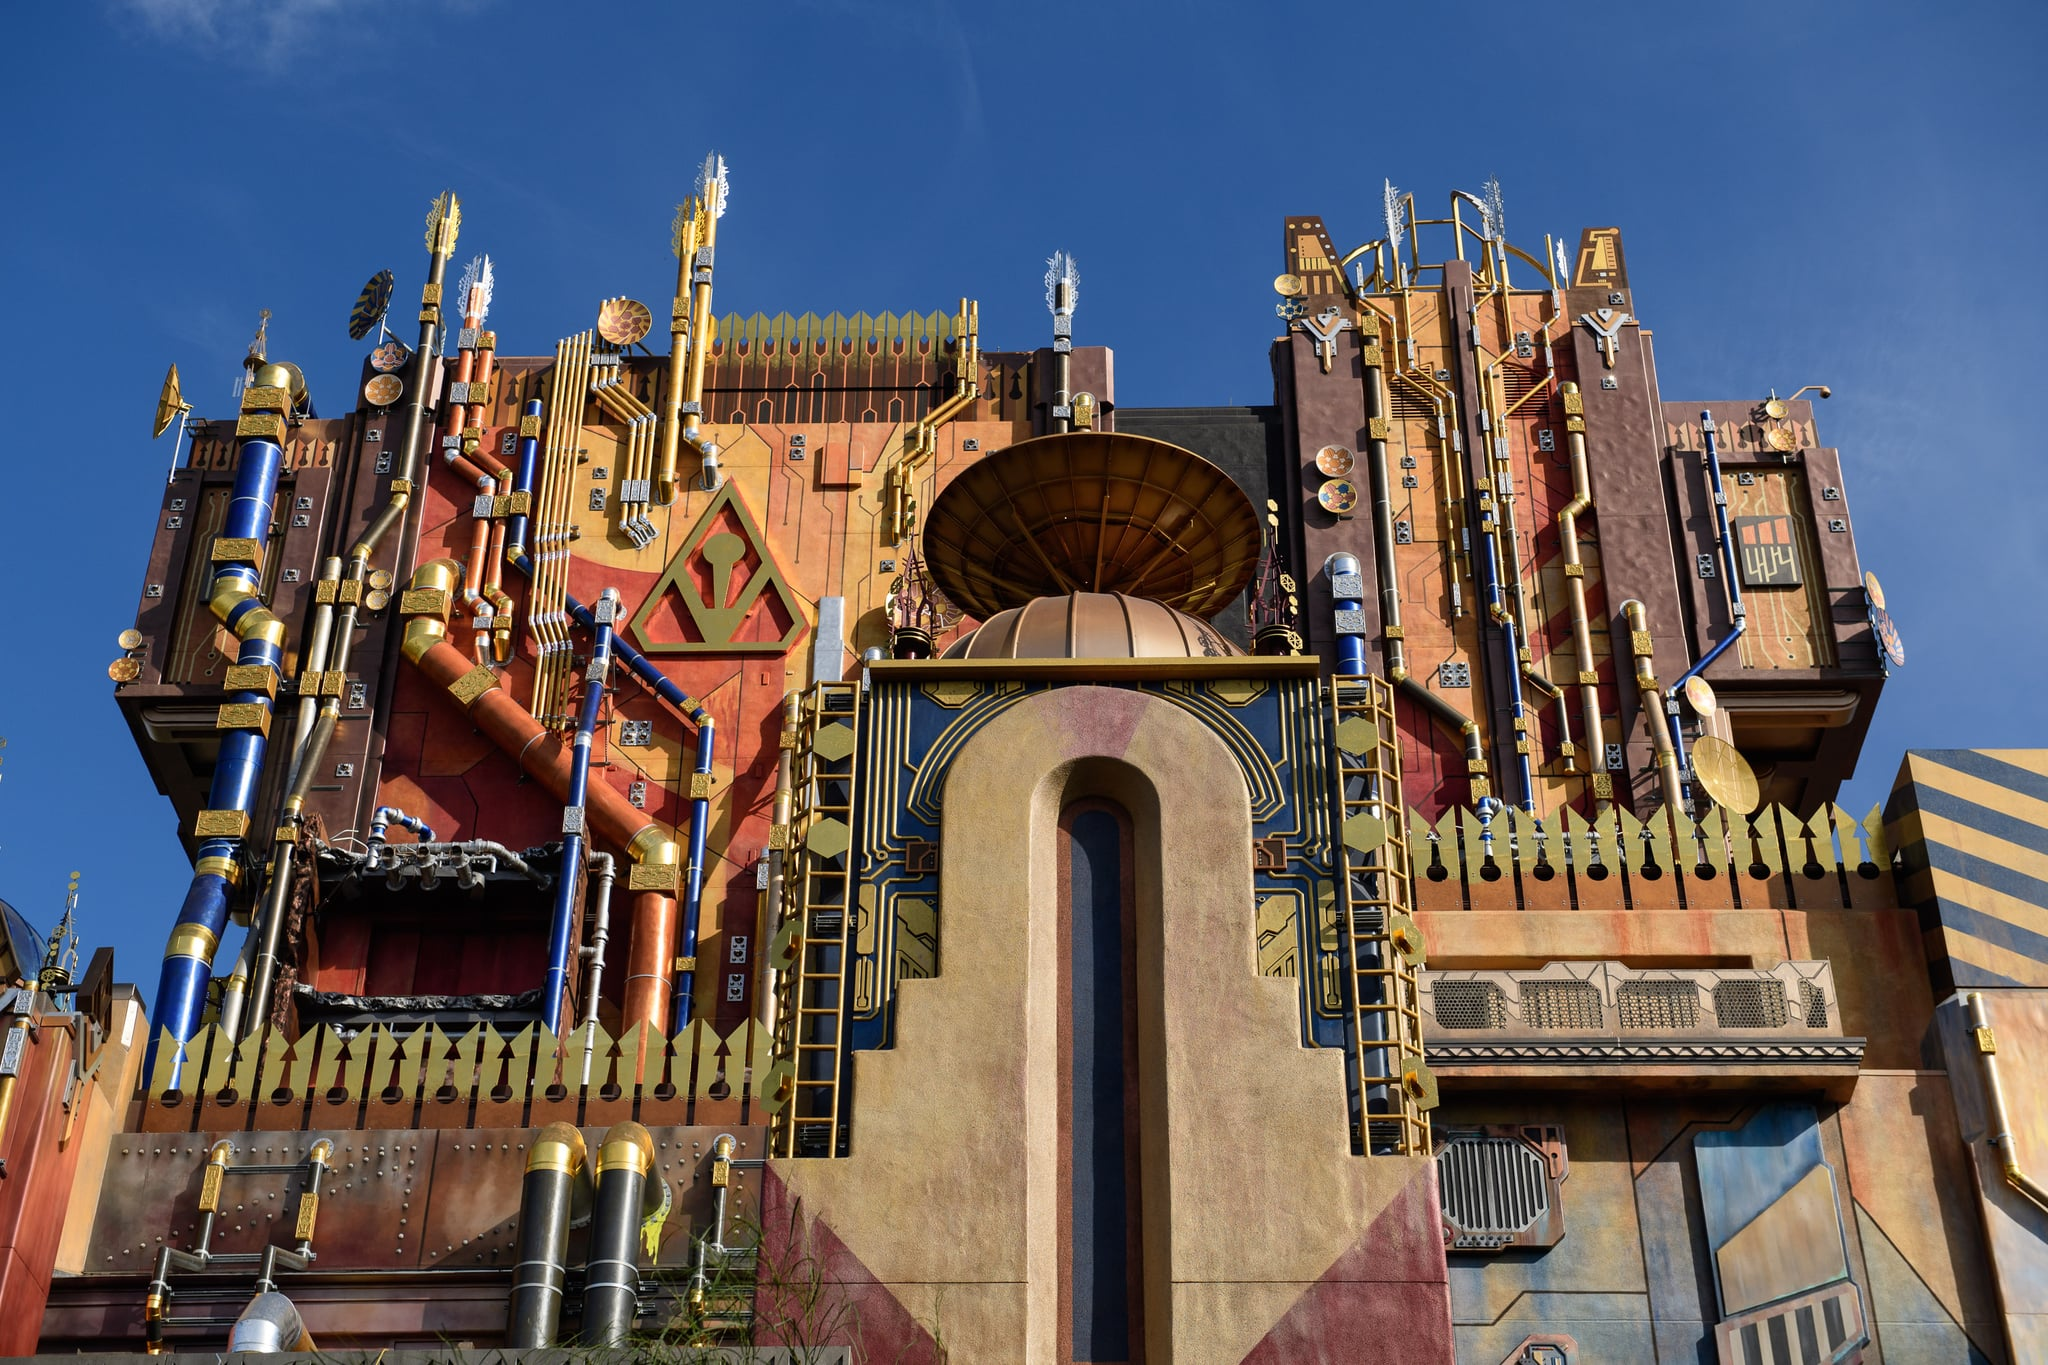 Guardians Of The Galaxy Ride At Disneyland Popsugar